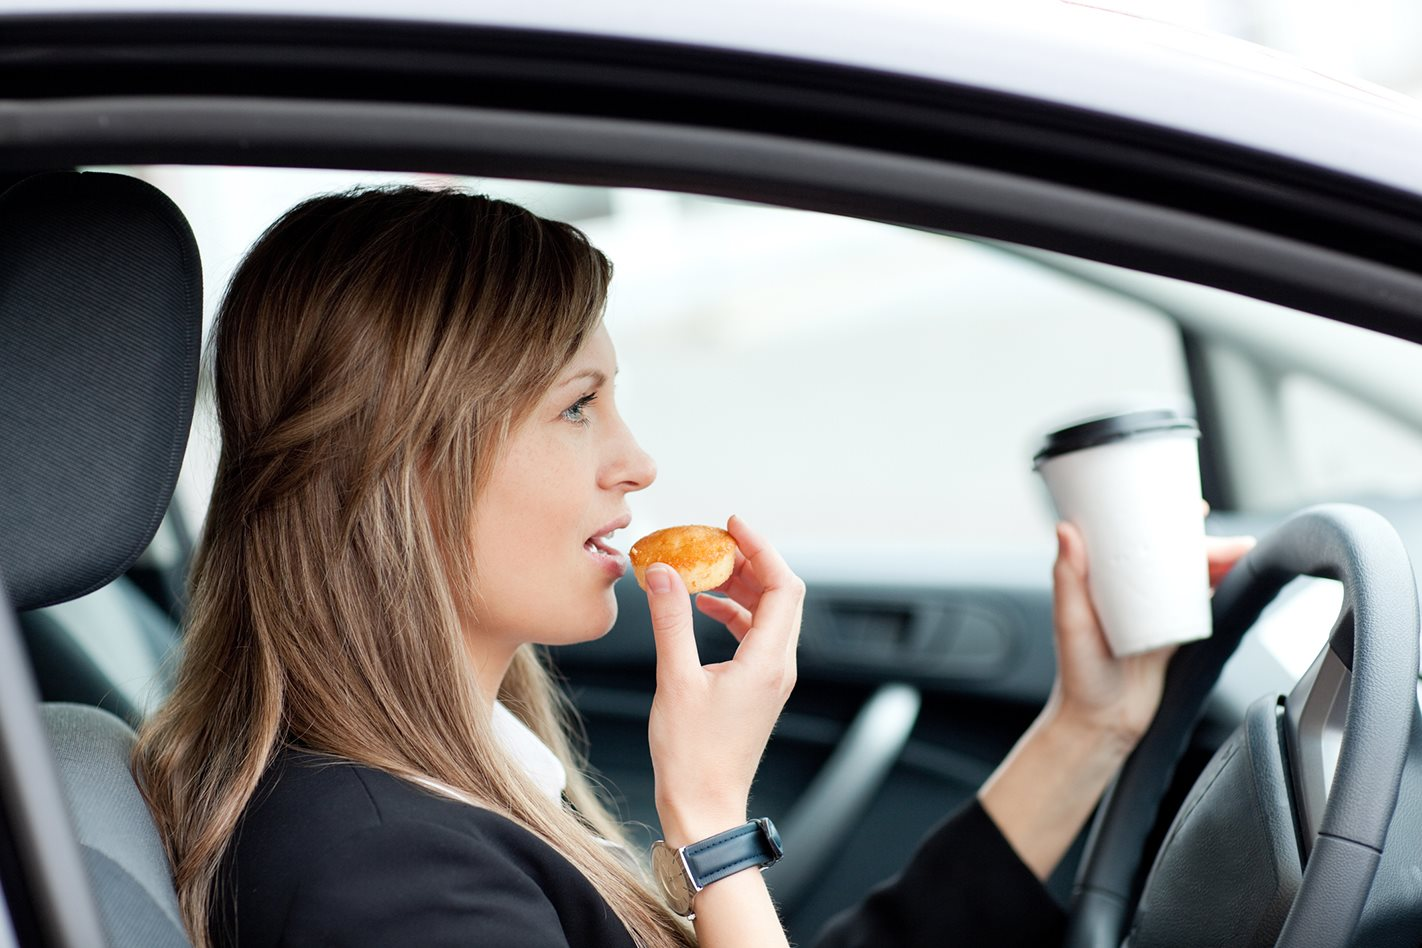 Driver distraction survey suggests most Aussie drivers are liars